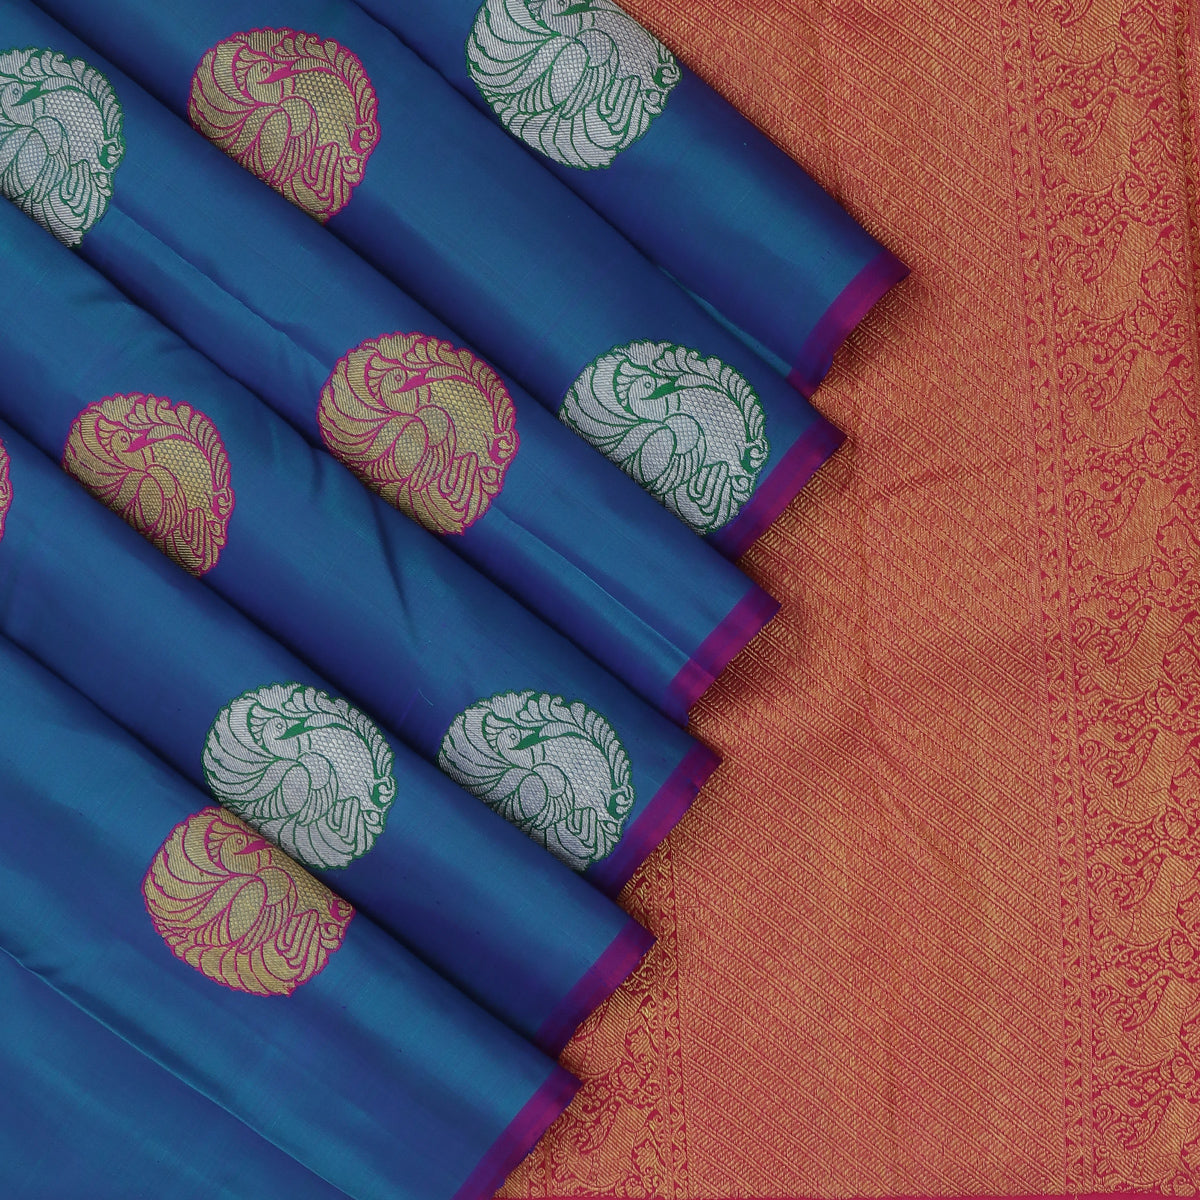 kanjivaram Silk Saree Aegean Blue and Pink with Annam Thread Buttas